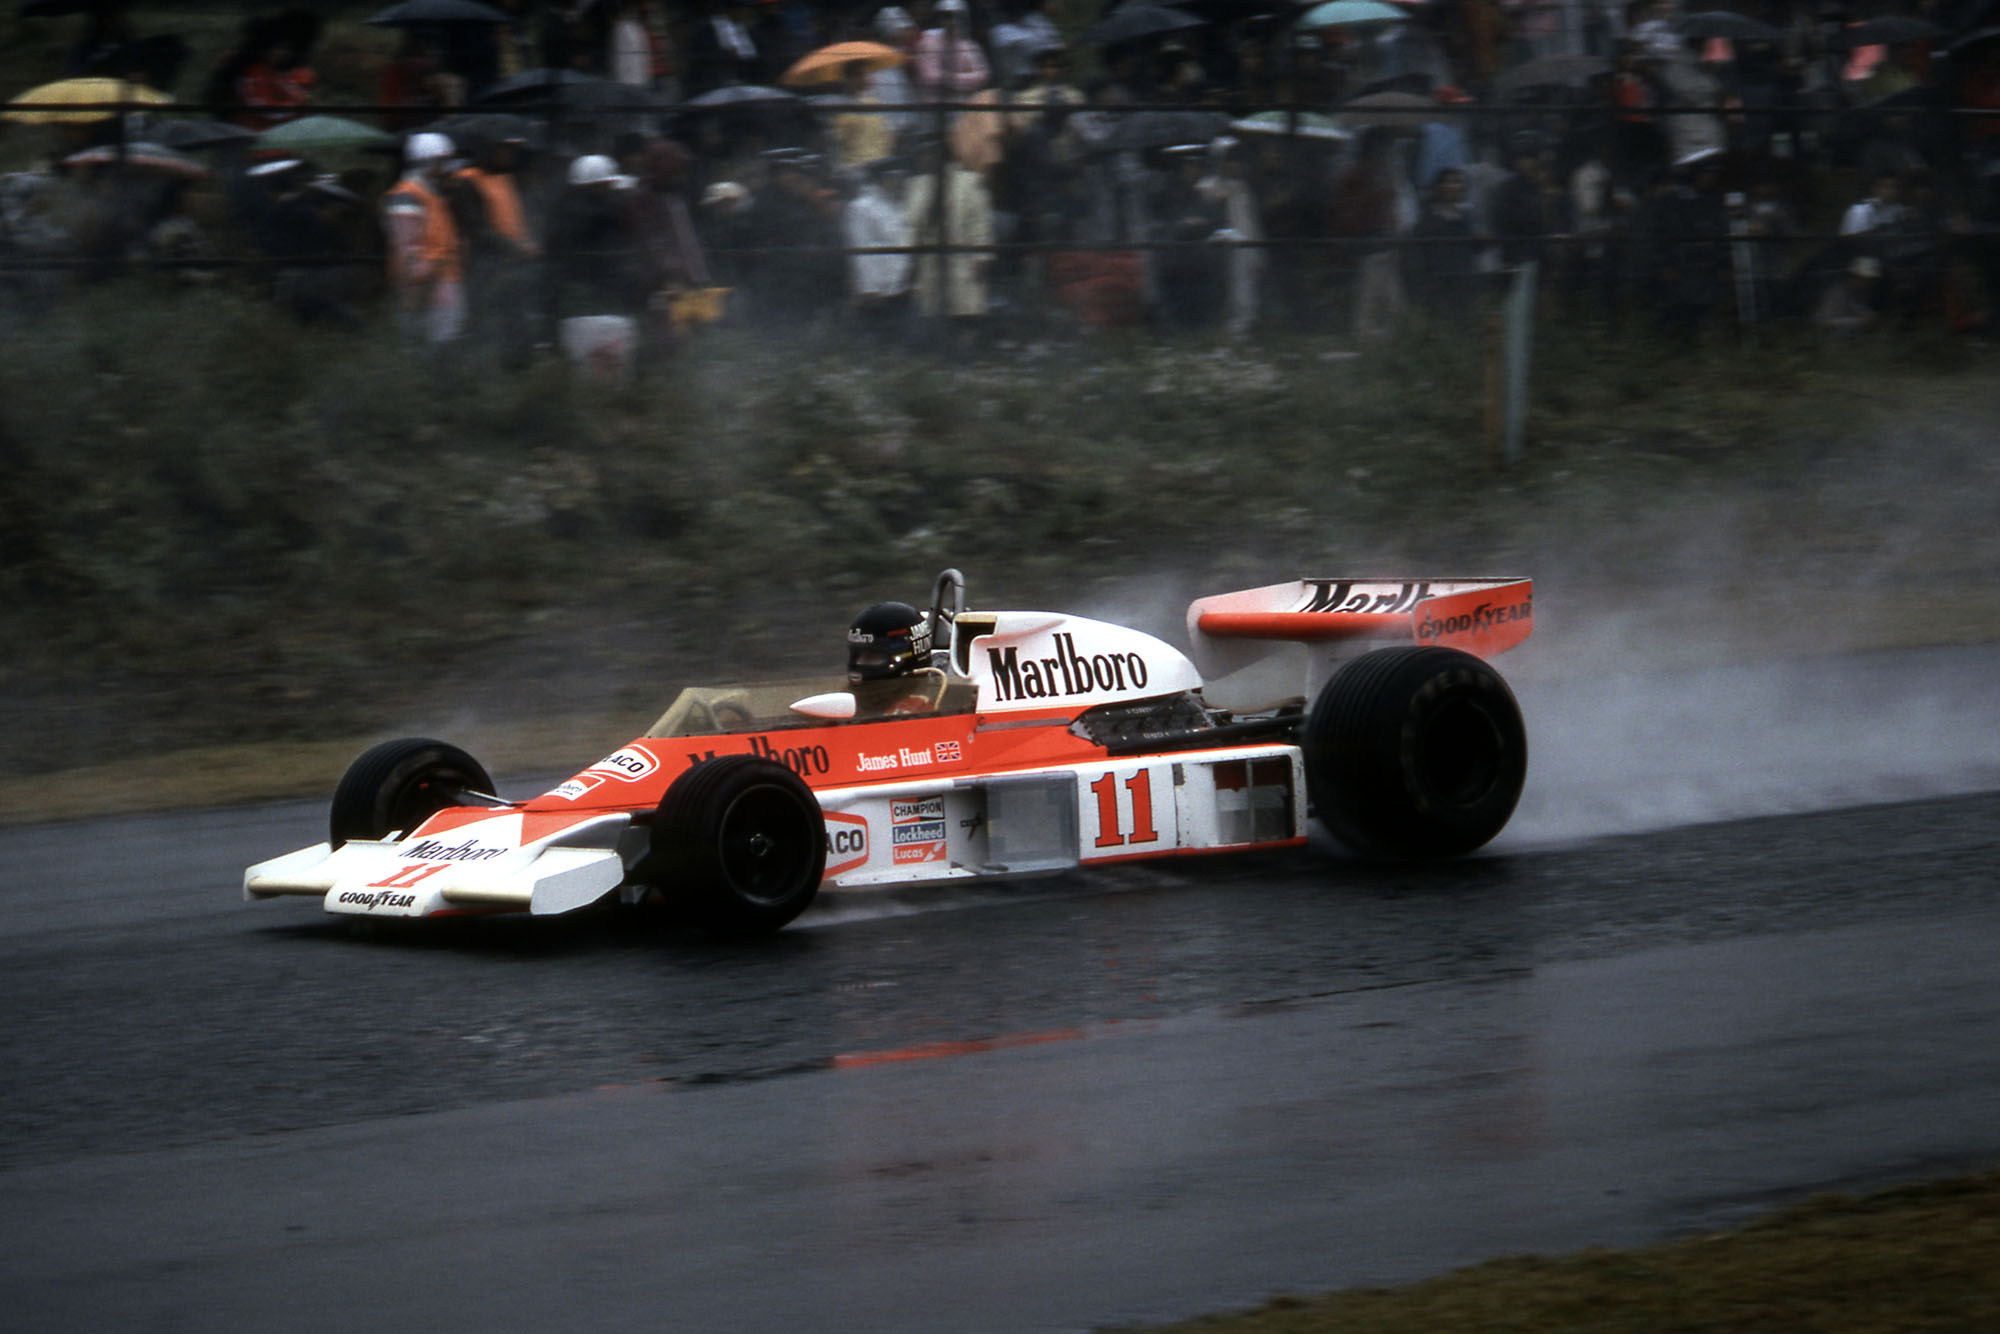 James Hunt driving his McLaren in wet conditions at the 1976 Japanese Grand Prix, Fuji.